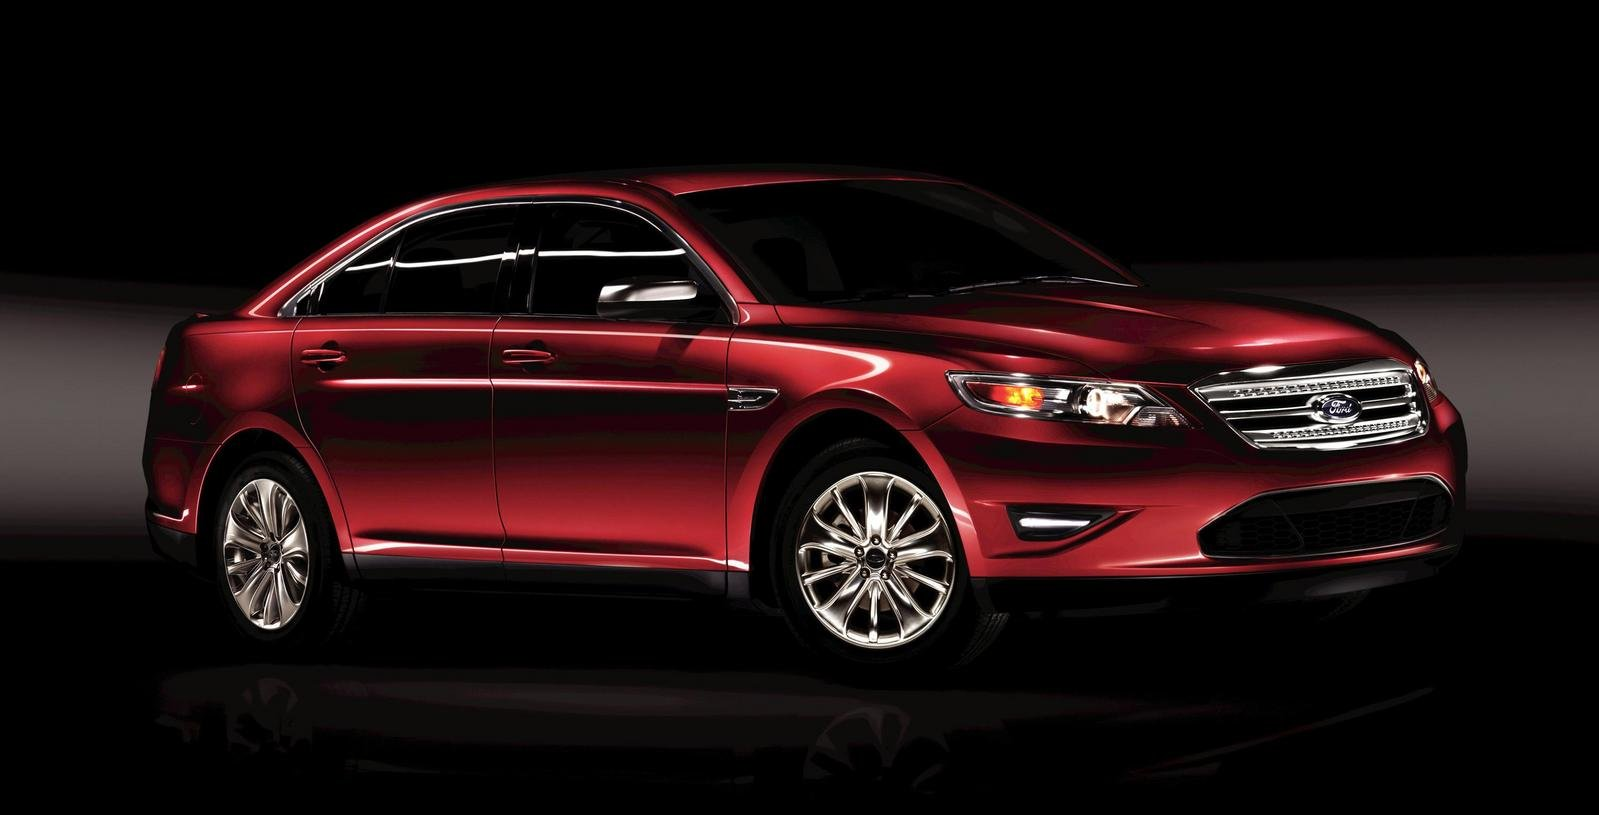 Red White And Blue Auto Sales >> 2010 Ford Taurus Review - Top Speed